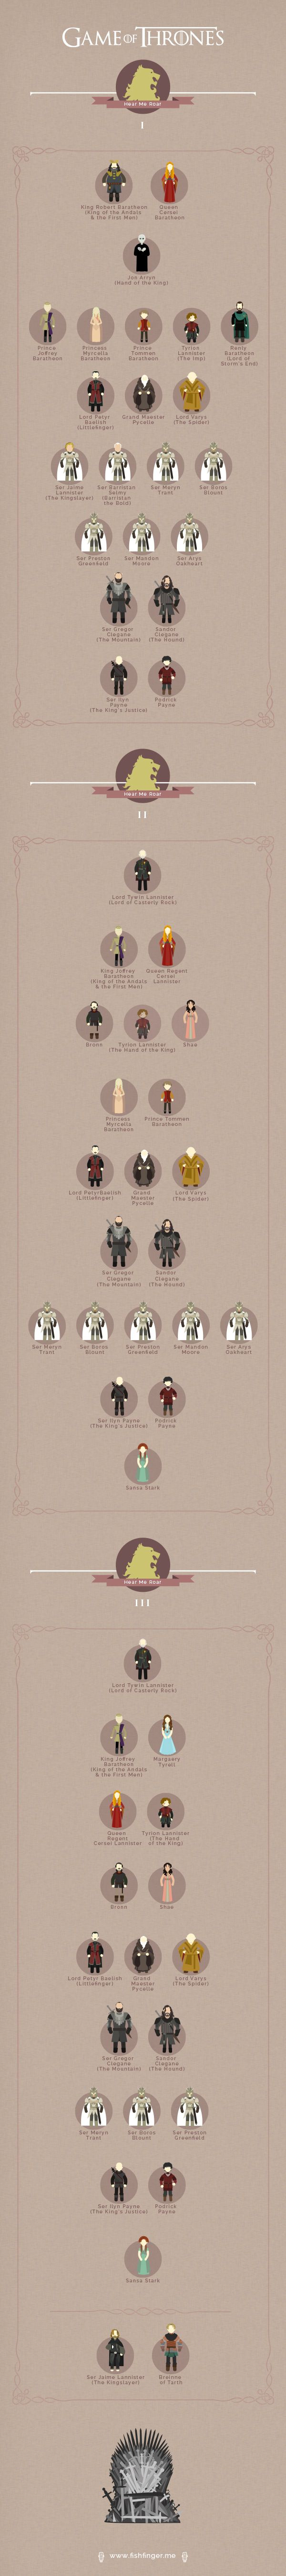 Game of Thrones Infographic - Lannister Graphicblog